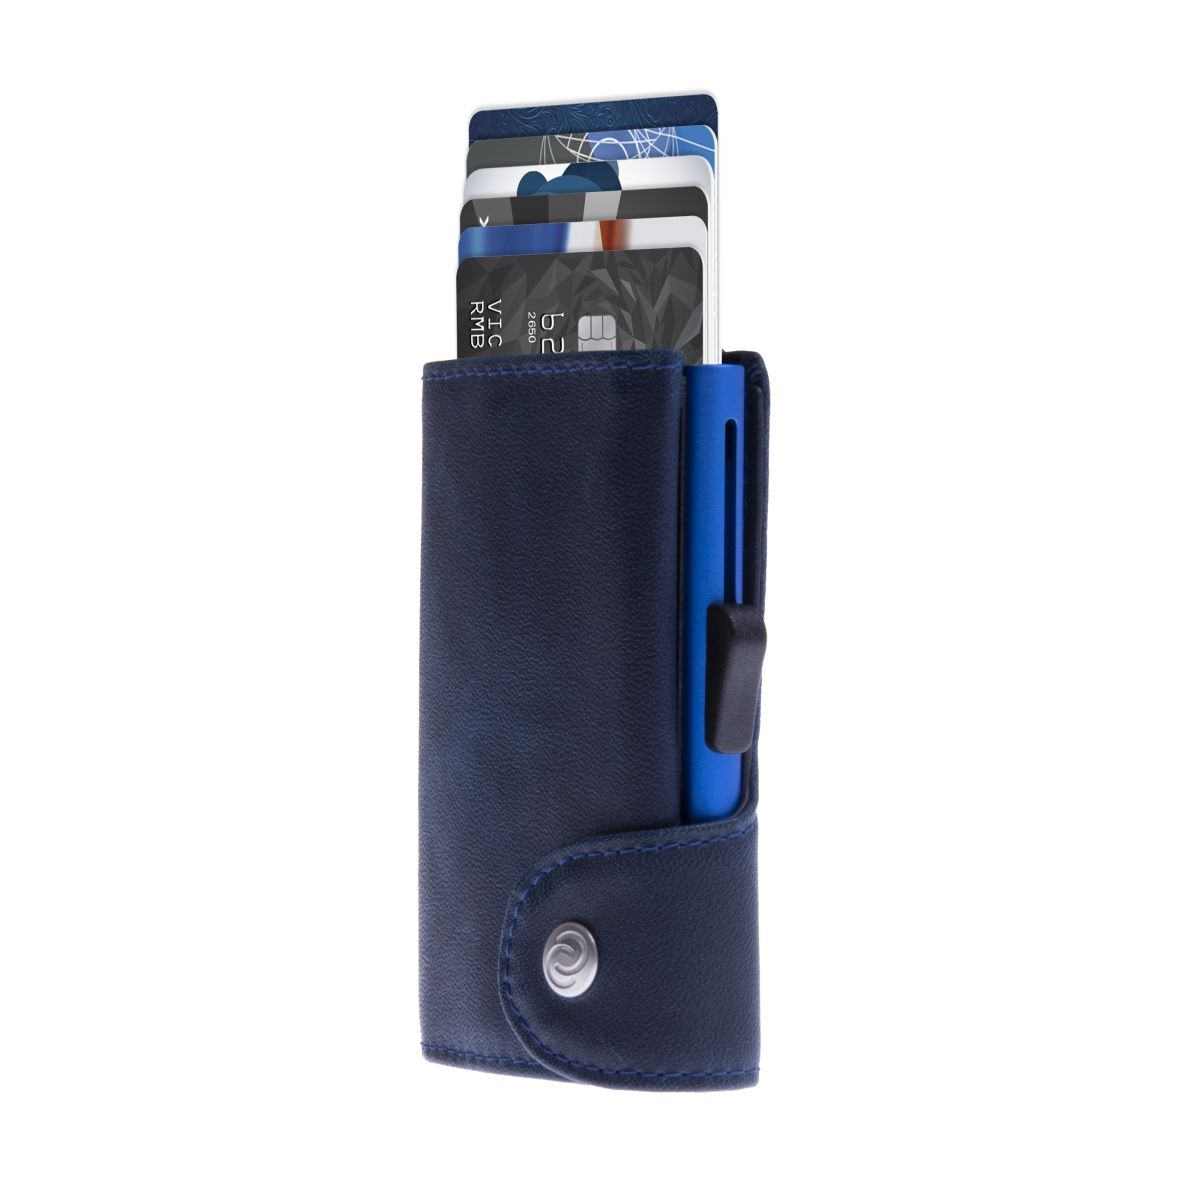 C-Secure Aluminum Card Holder with Genuine Leather - Navy Blue